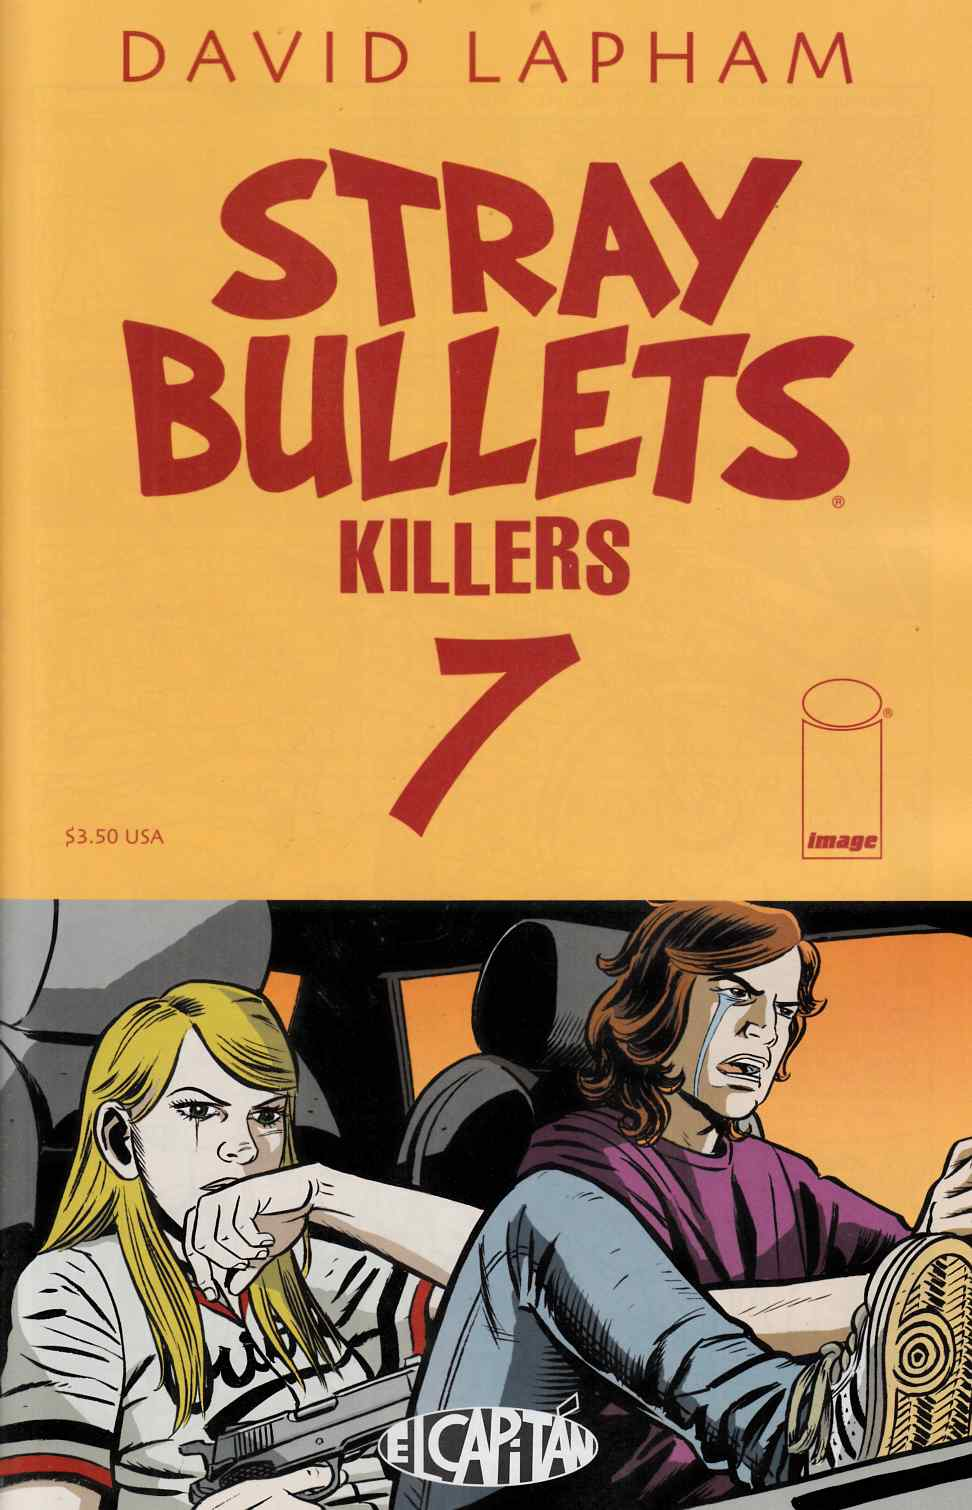 Stray Bullets the Killers #7 [Image Comic] THUMBNAIL